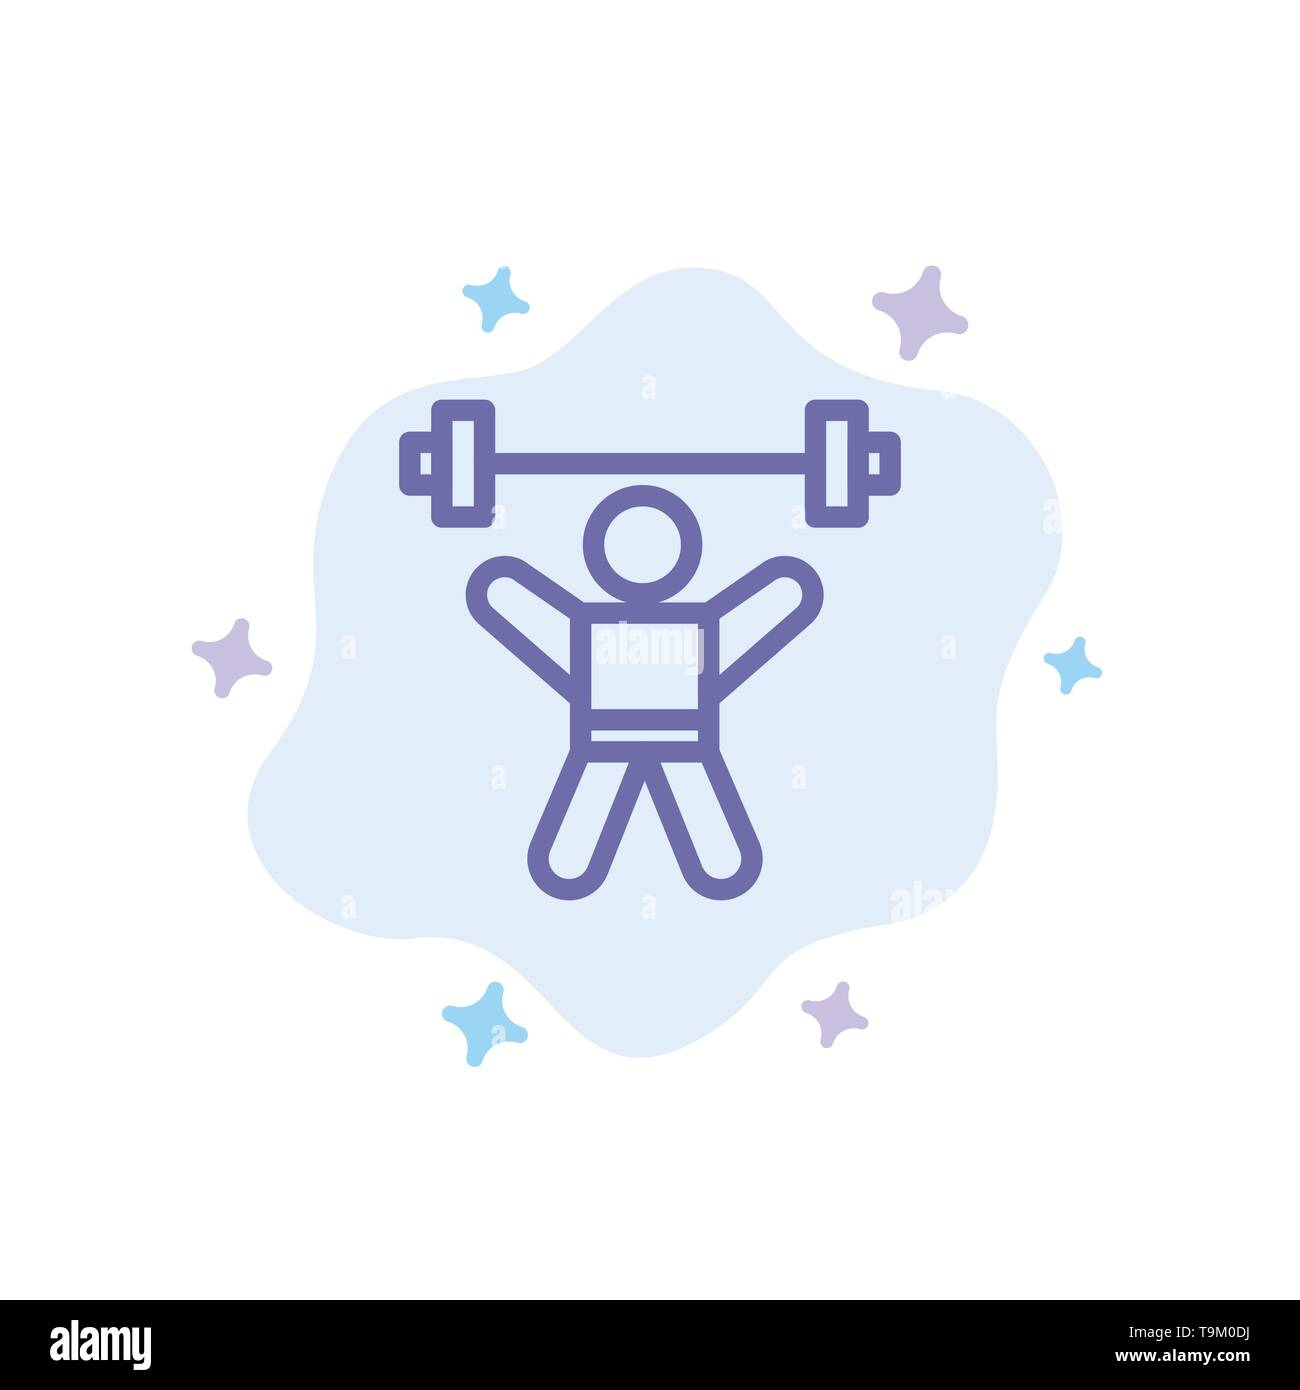 Athlete, Athletics, Avatar, Fitness, Gym Blue Icon on Abstract Cloud Background - Stock Image